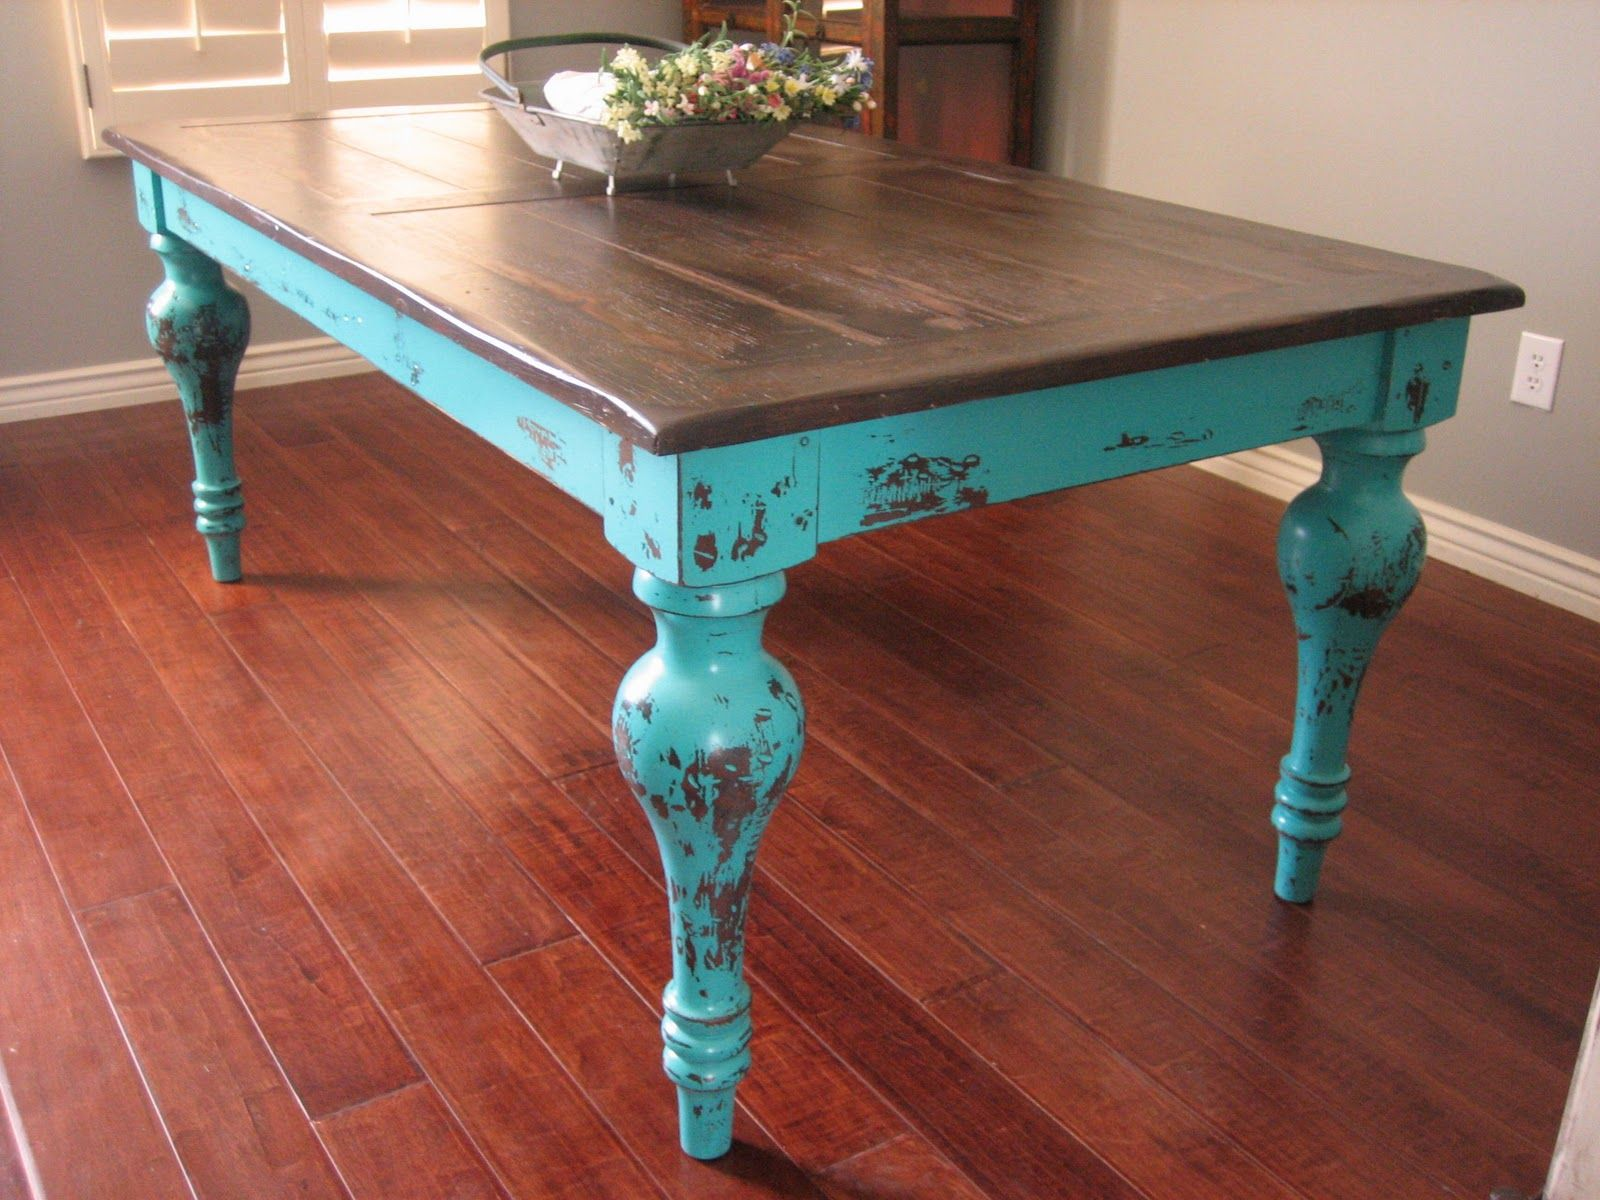 Rustic Dining Table Inspiration For My Re Do Europeanpaintfinishes